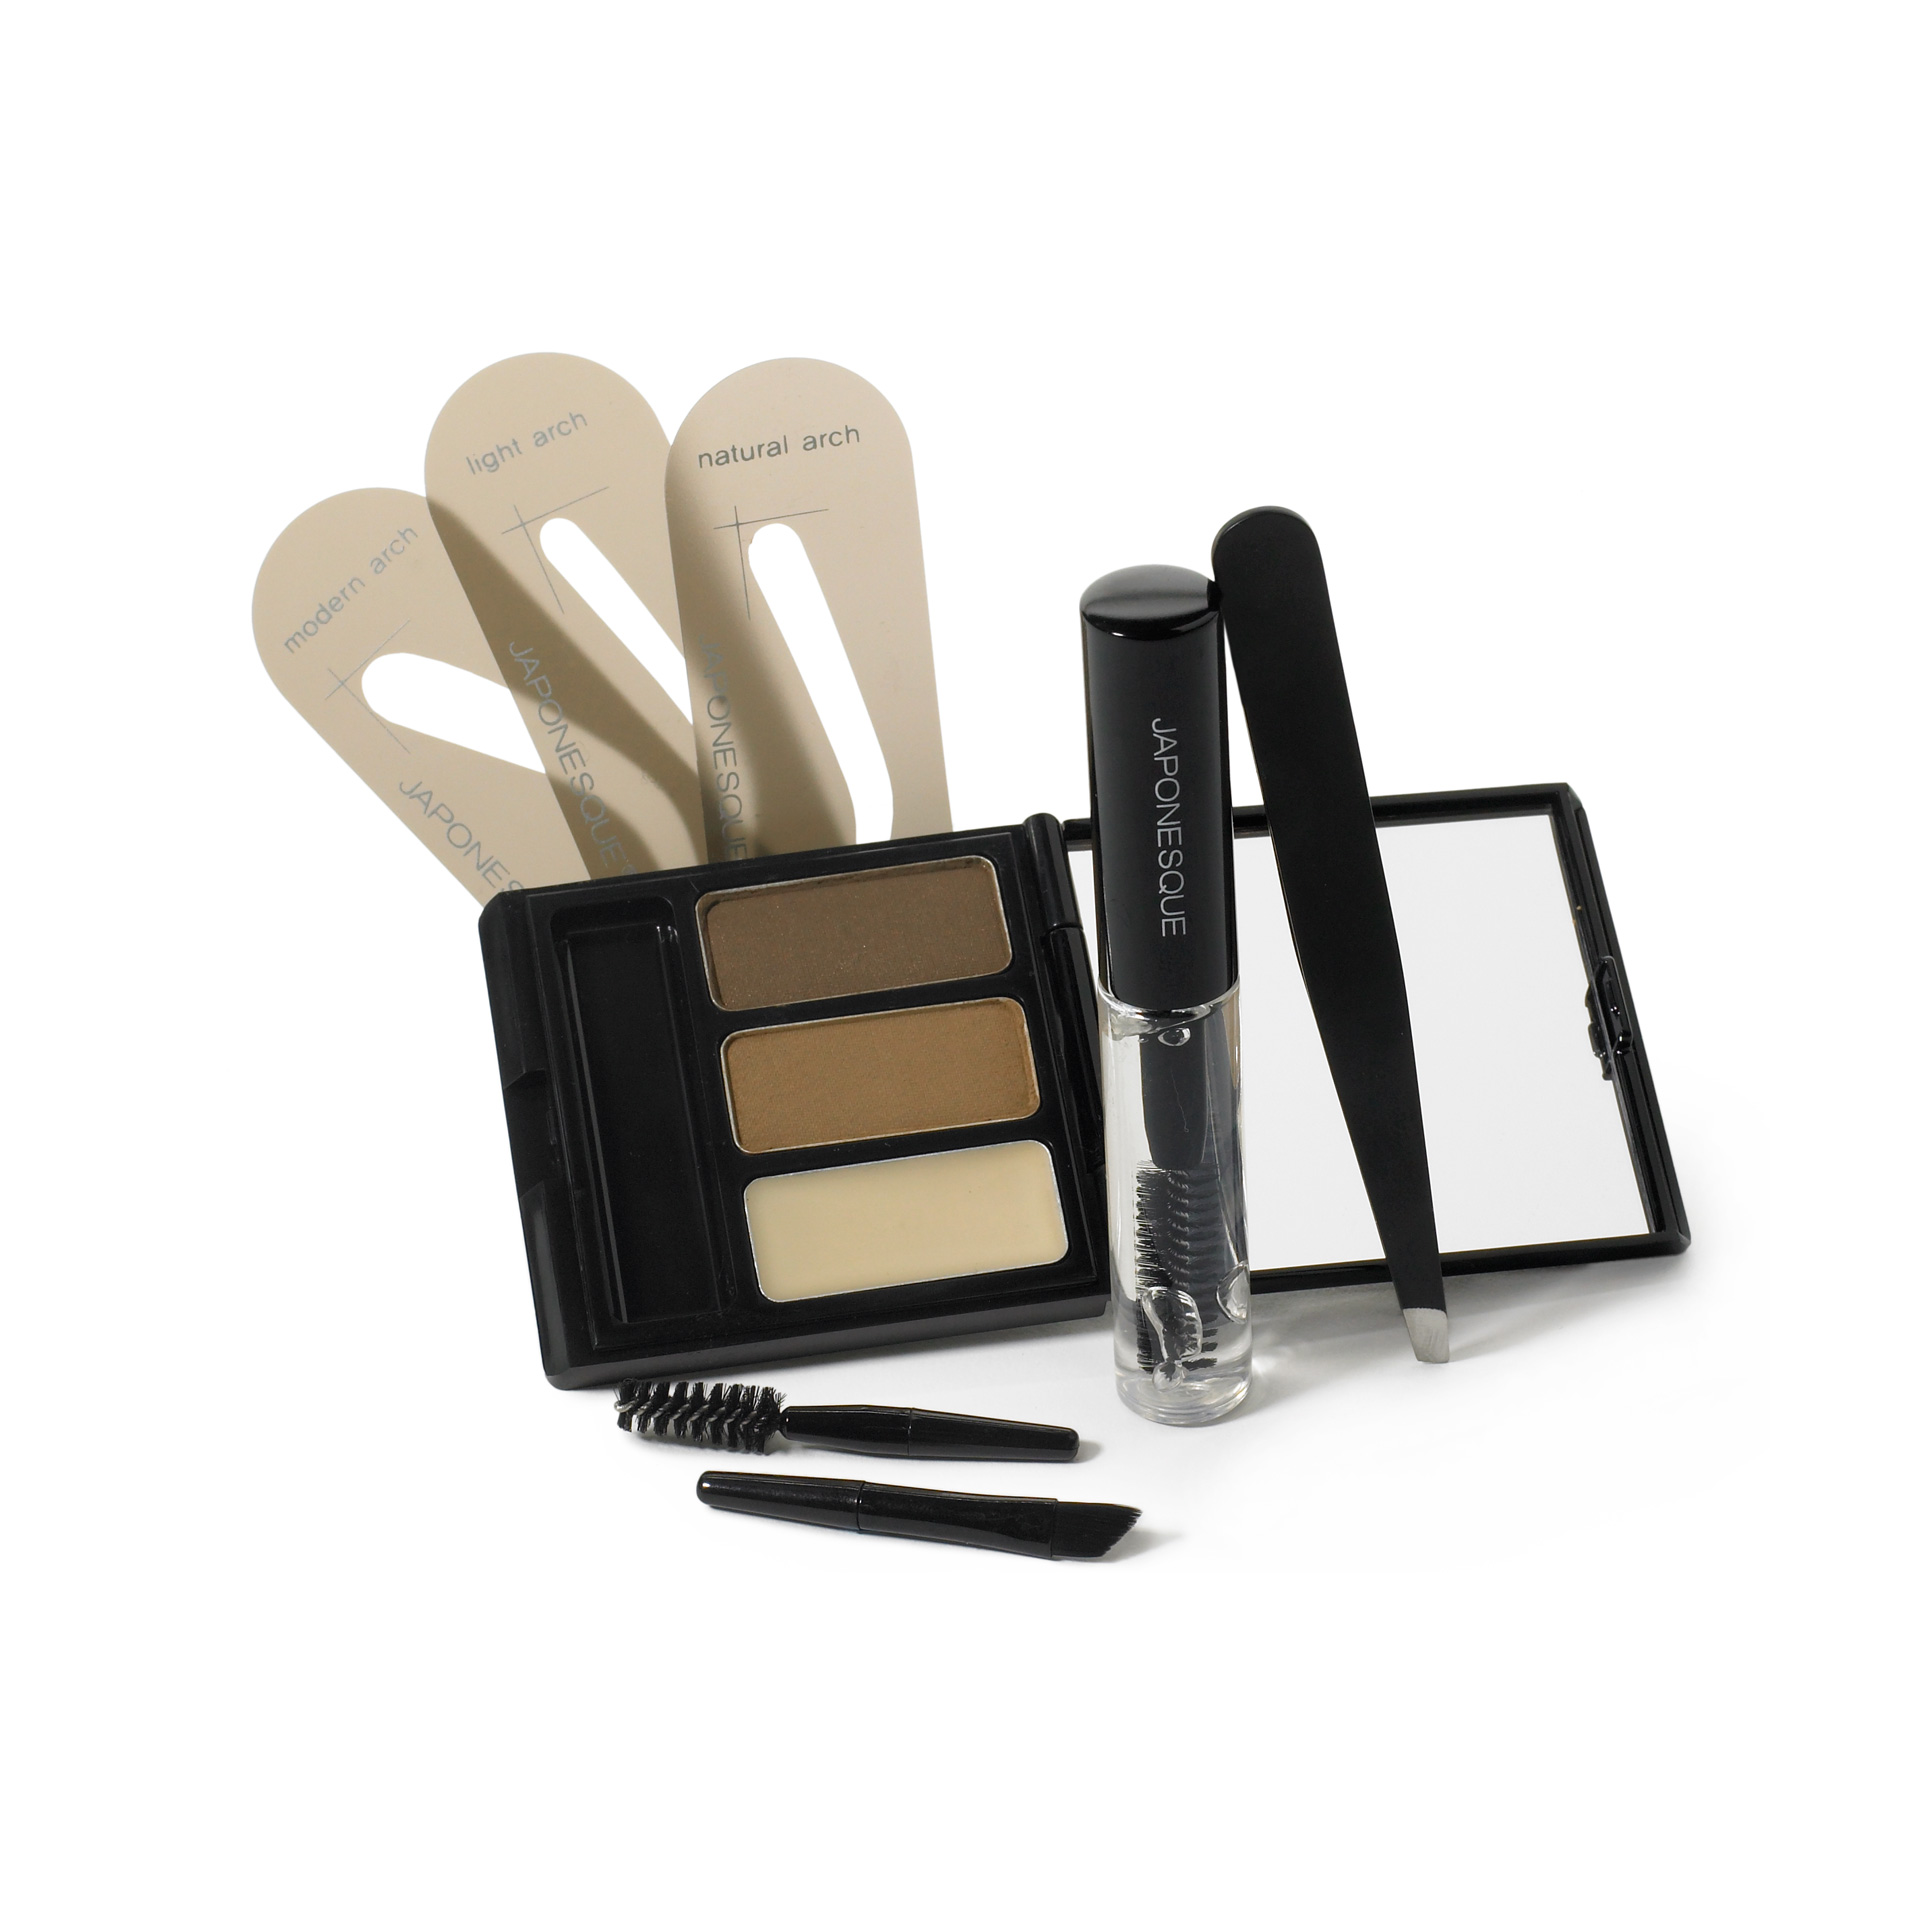 Brow Kits: 10 Kits to Help Maintain YourArches